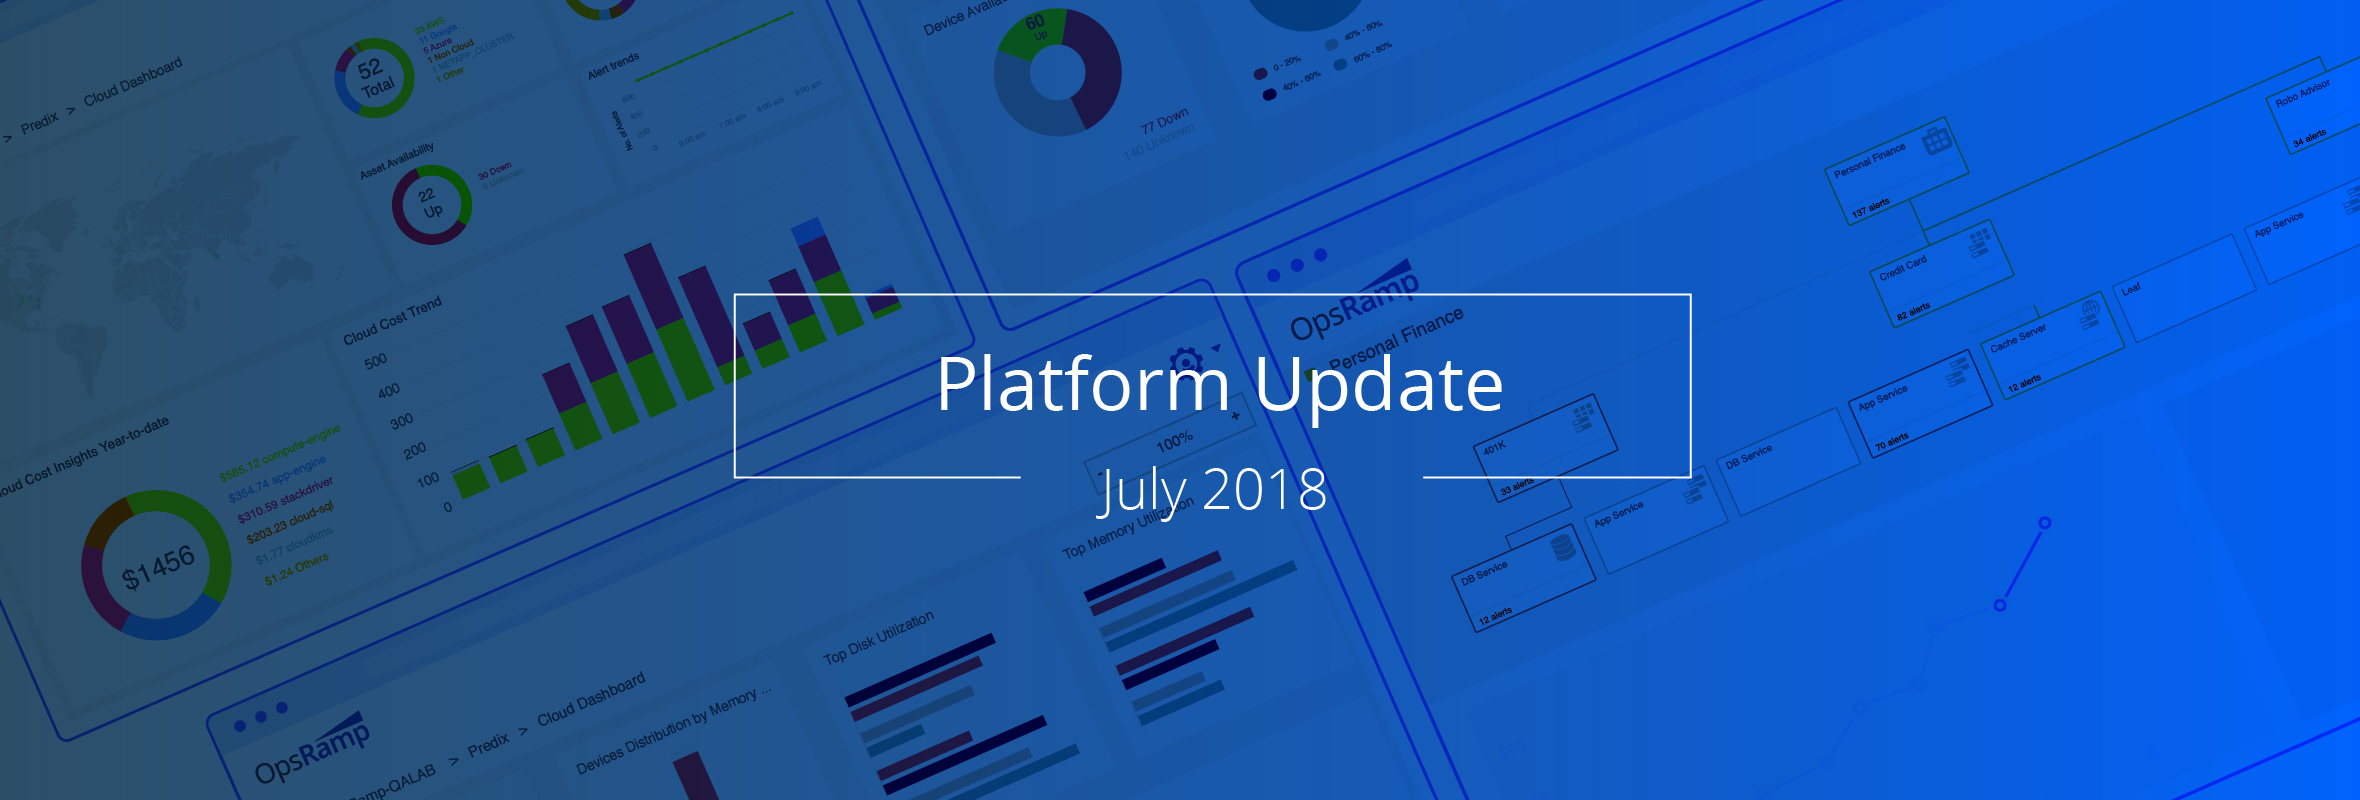 OpsRamp July 2018 Platform Update: Manage Your Hybrid IT Ecosystem Better